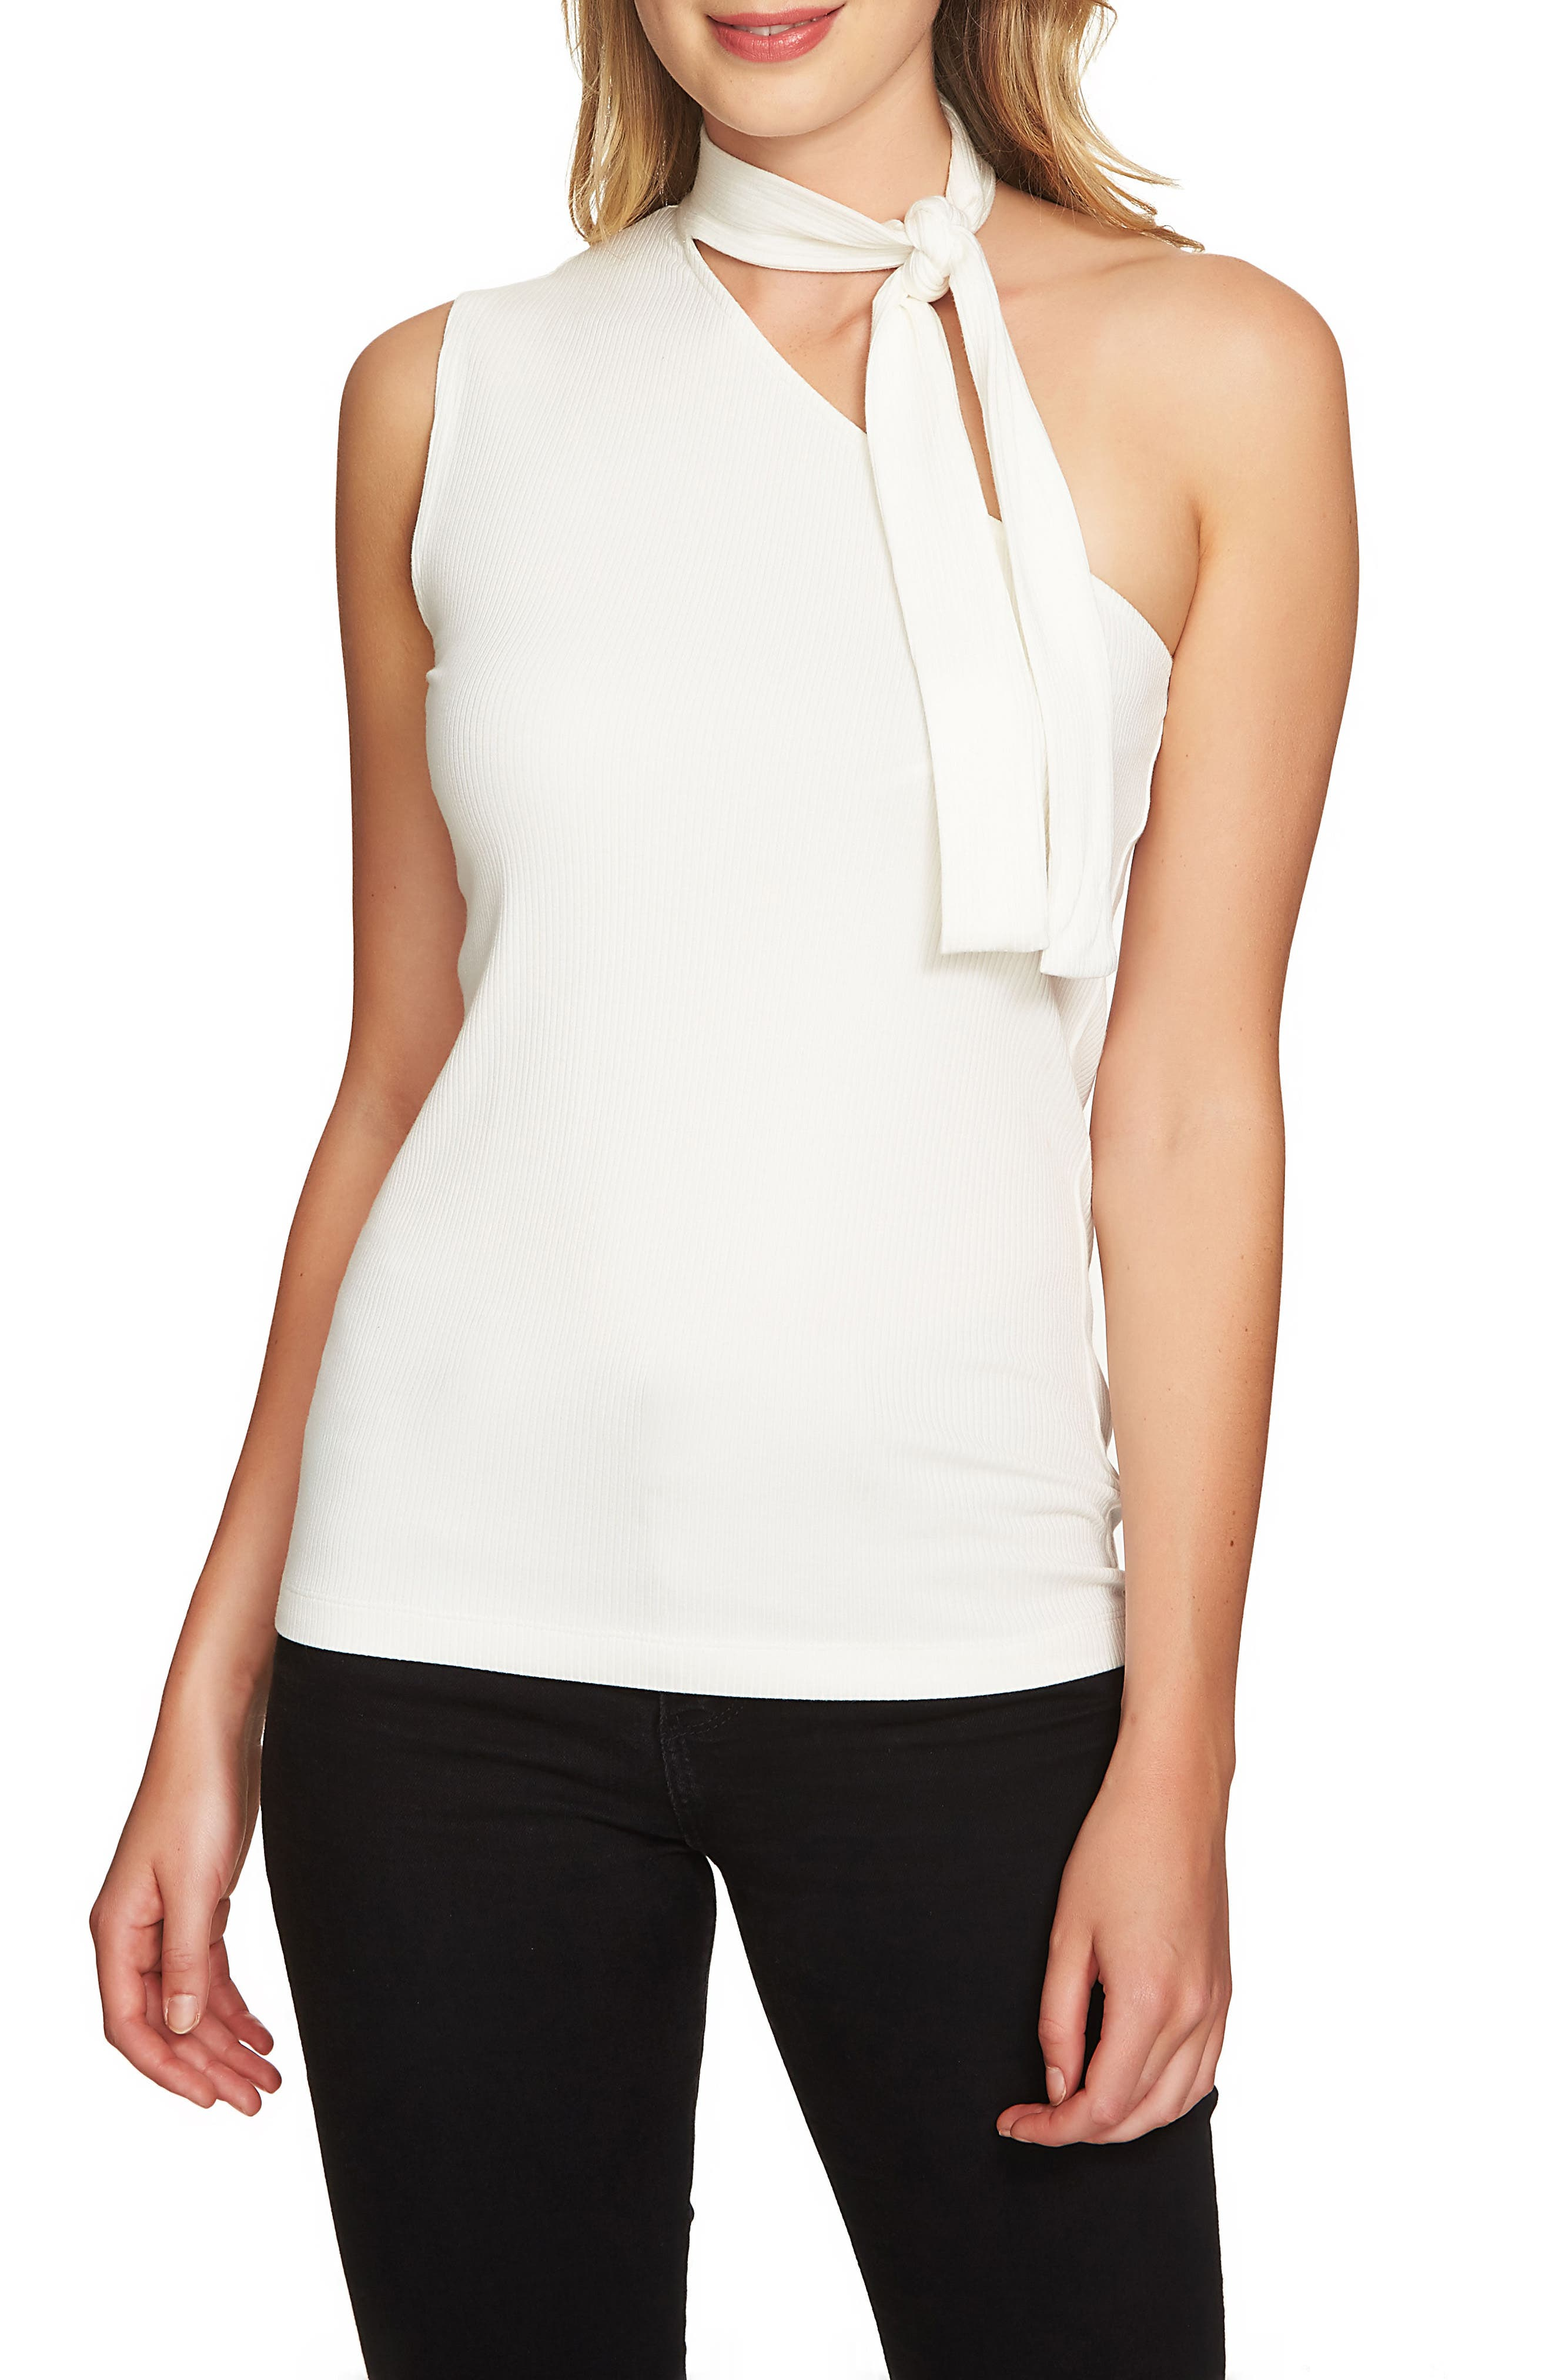 Main Image - 1.STATE Tie Neck One-Shoulder Top